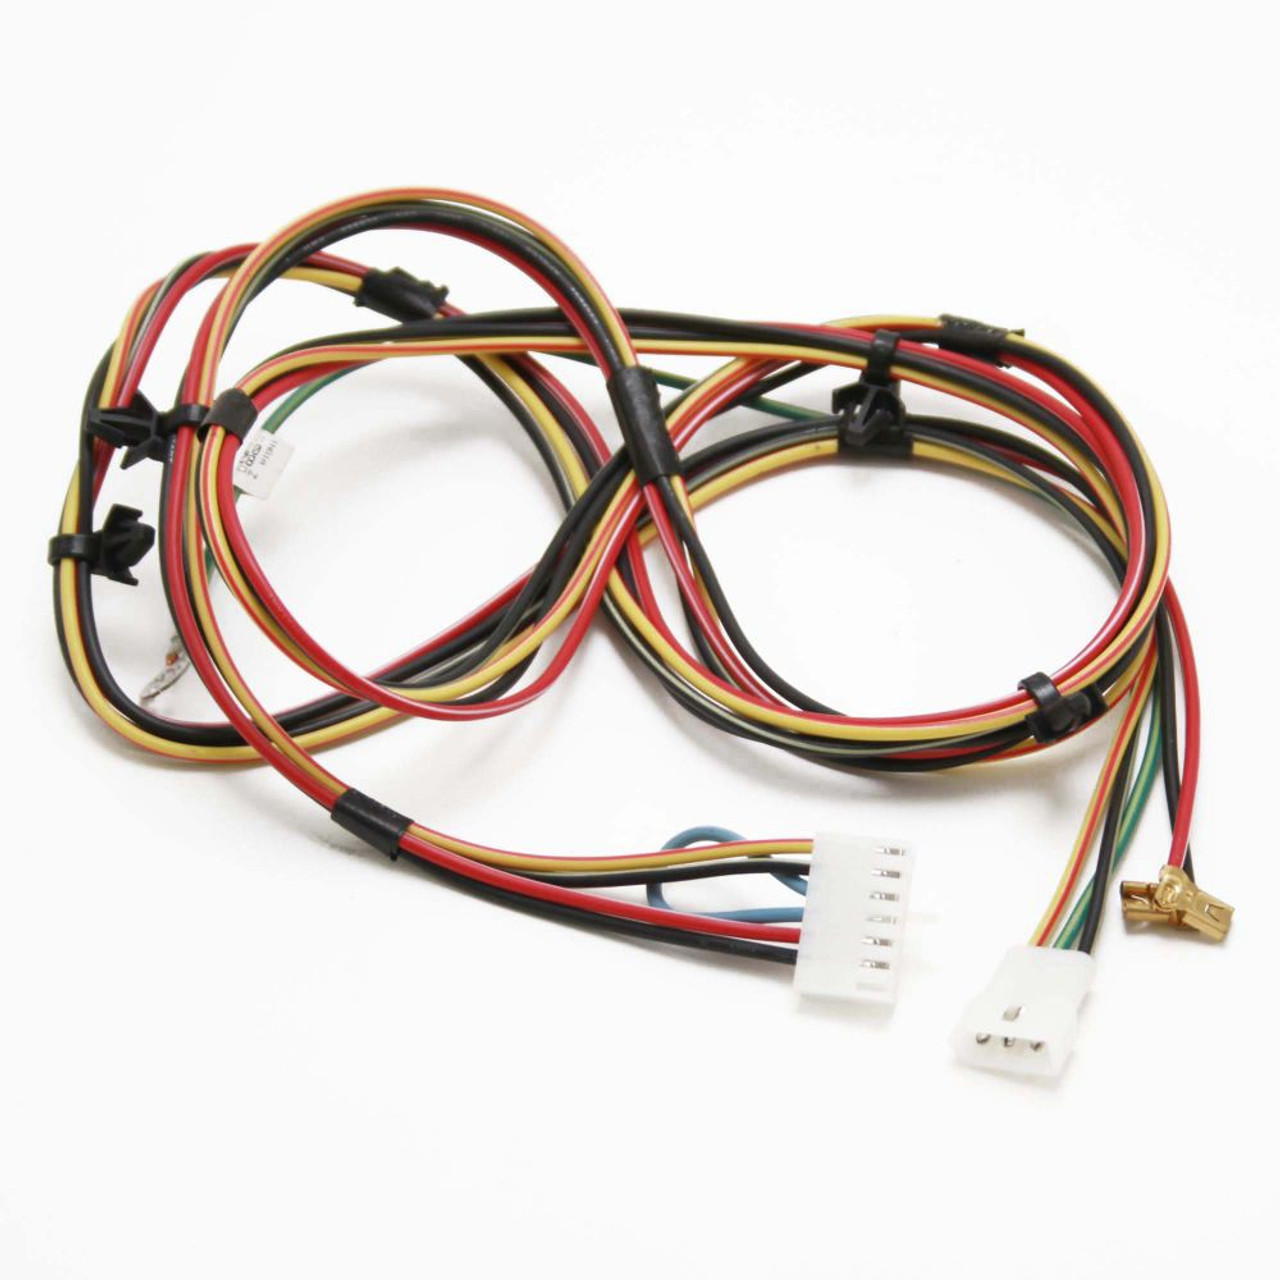 hight resolution of  whirlpool 8299929 dryer wire harness 8299929